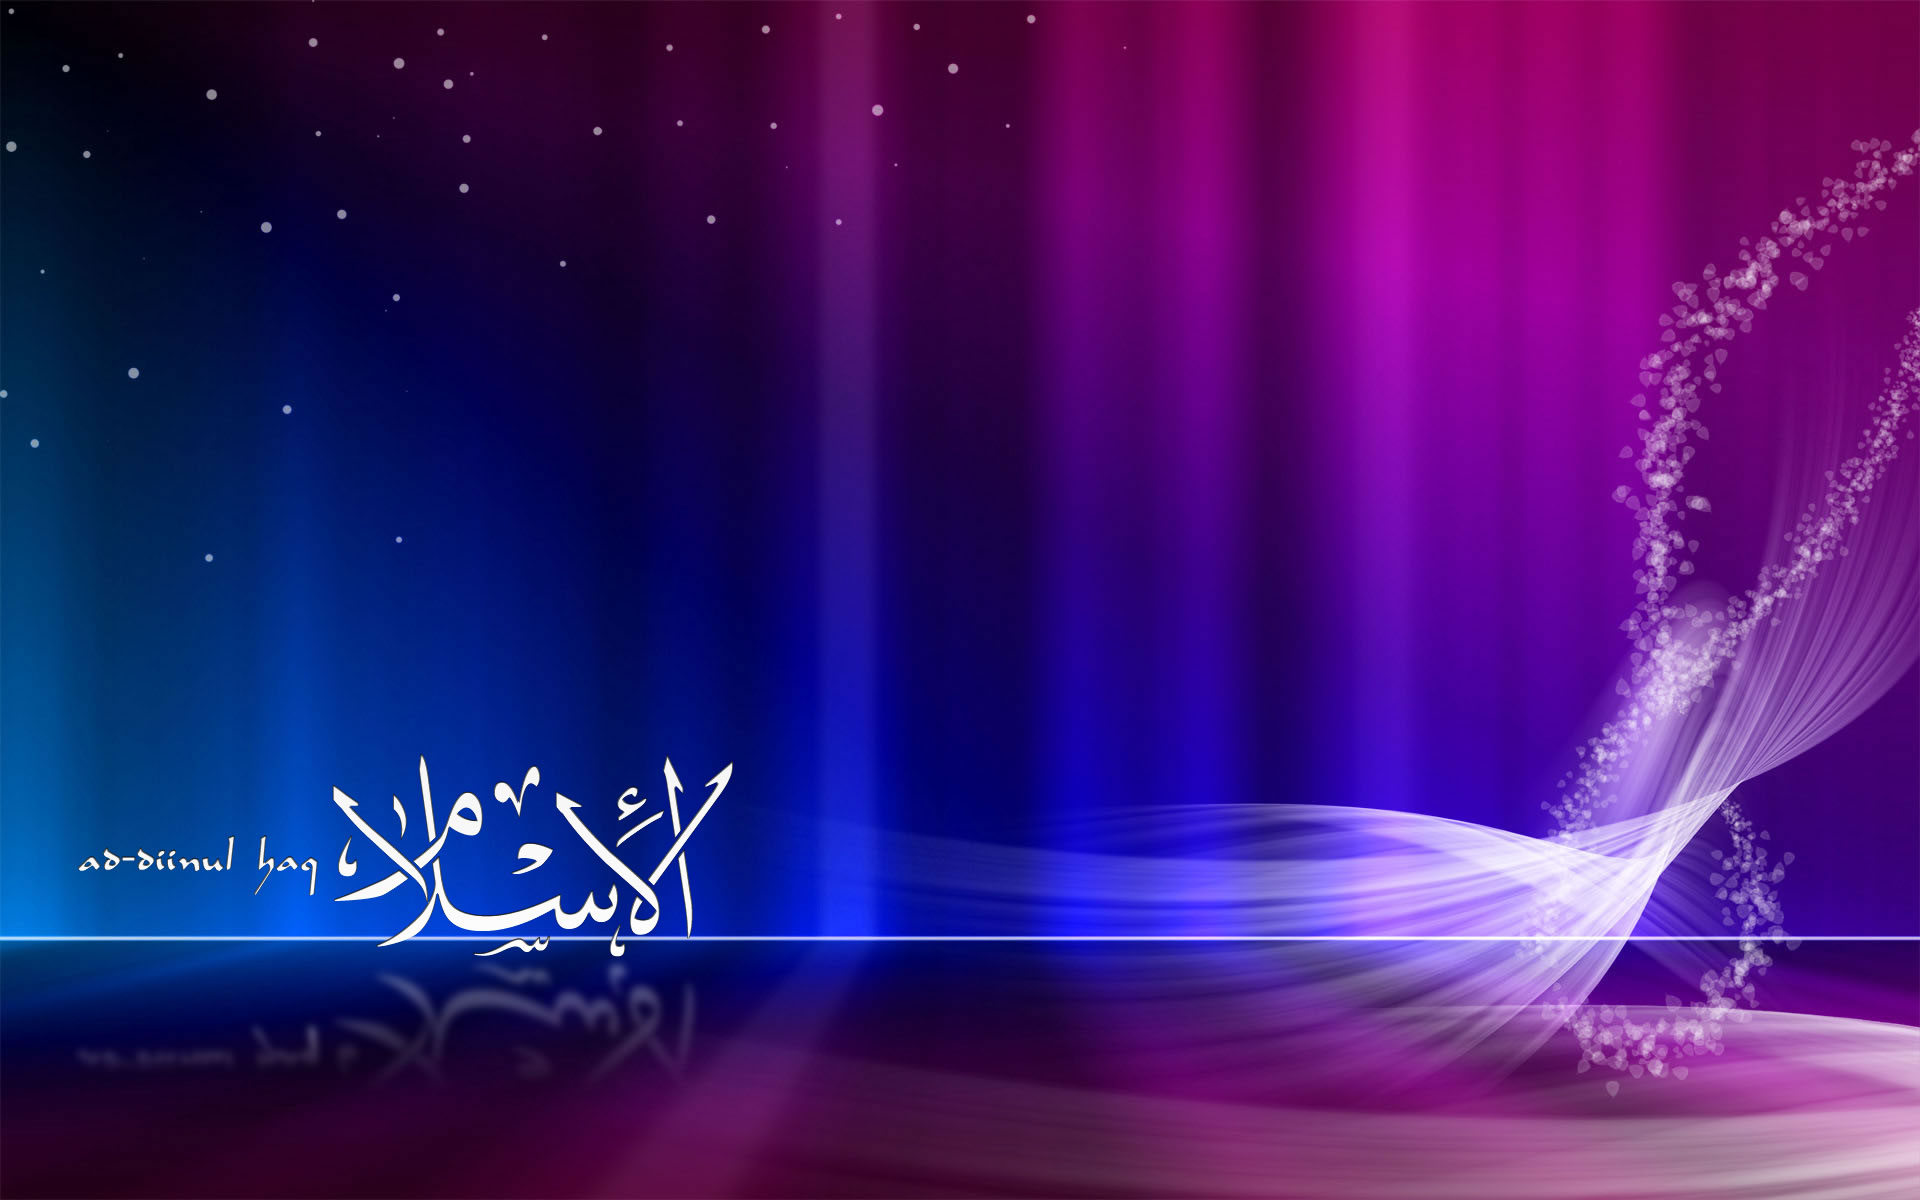 Islamic Wallpapers, Pictures, Images